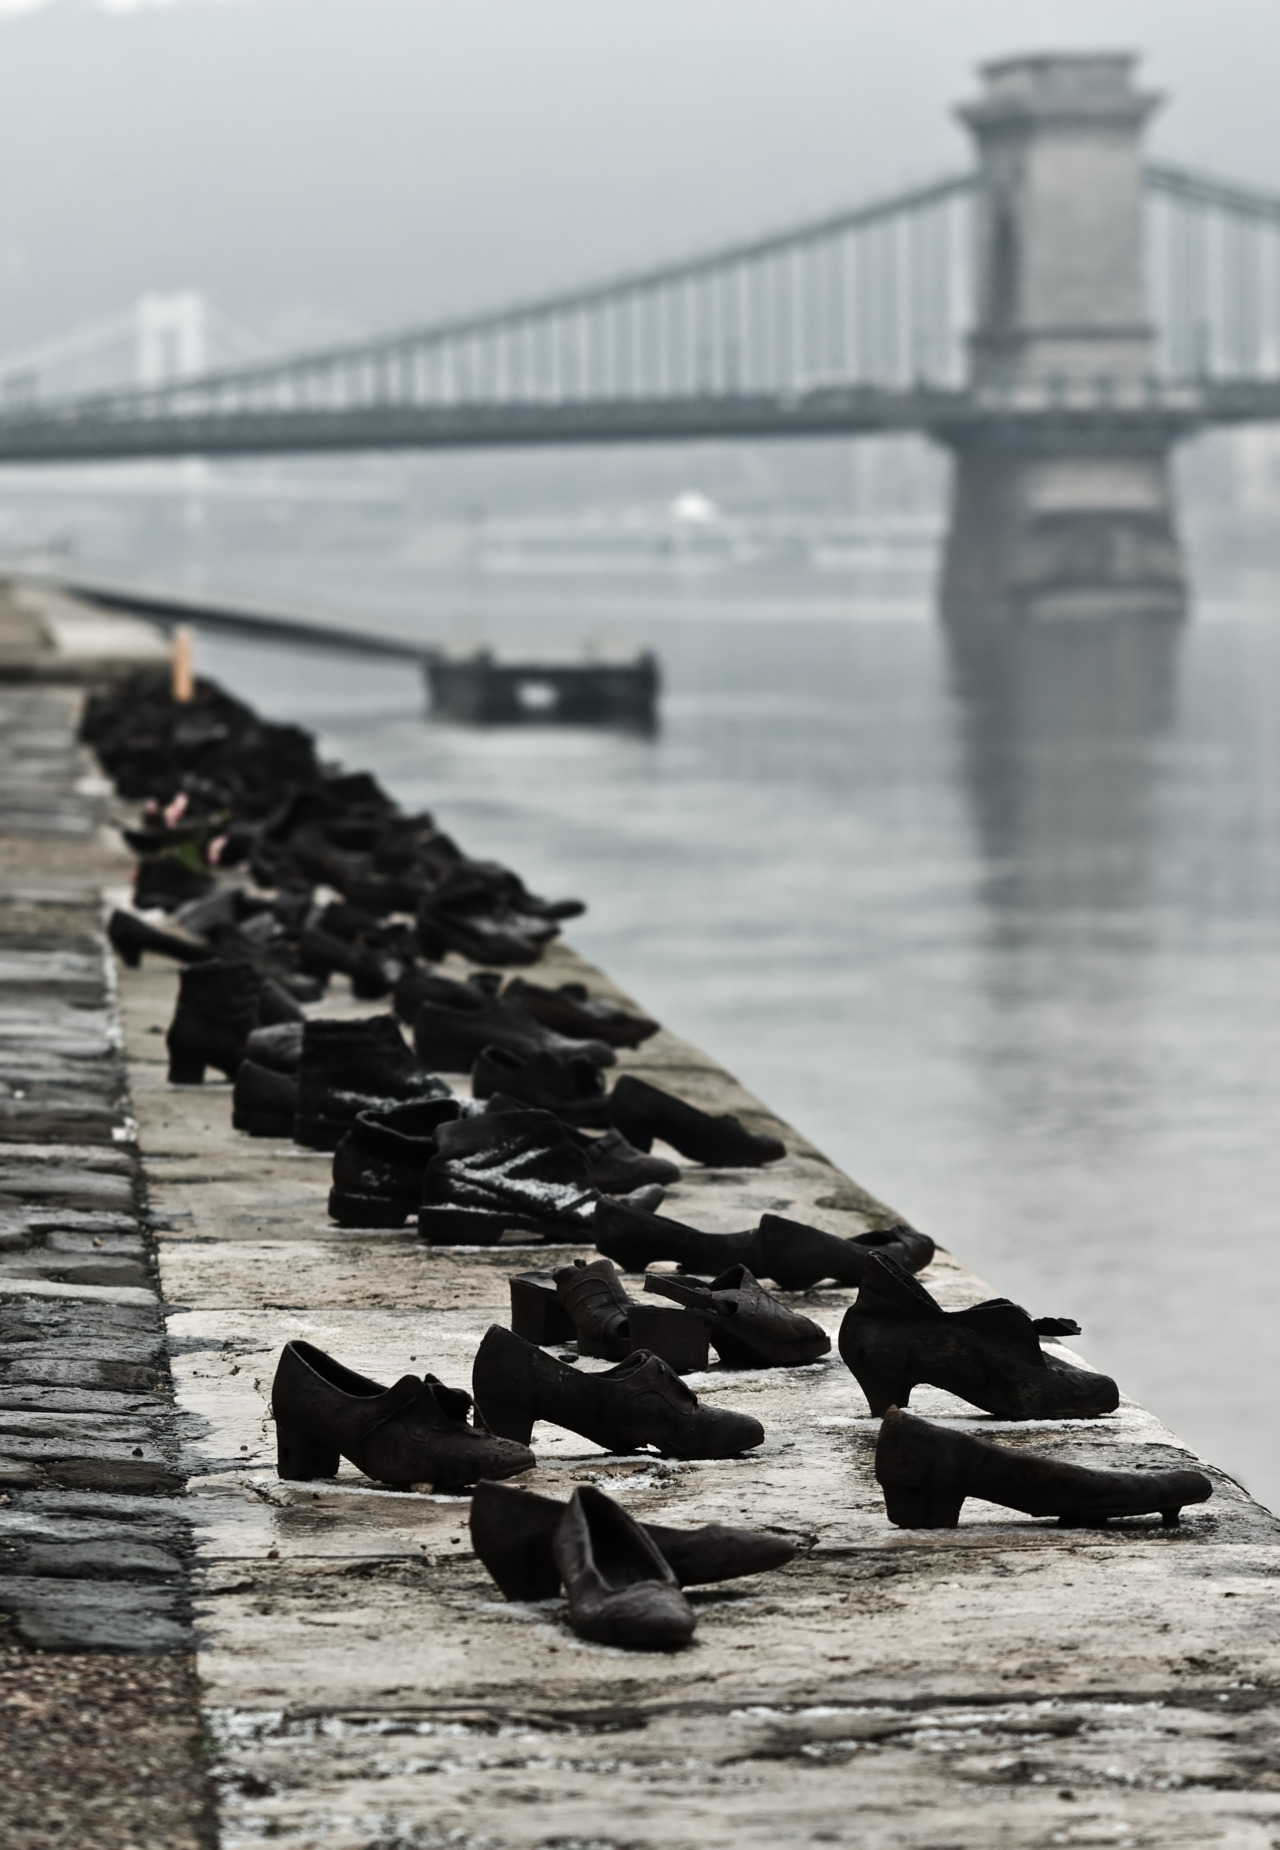 "© Nikodem Nijaki, Jan. 1, 2012, Shoes on the Danube Promenade - Holocaust Memorial, Budapest The Shoes on the Danube Promenade is a memorial created by Gyula Pauer and Can Togay on the bank of the Danube River in Budapest. It honors the Jews who were killed by fascist Arrow Cross militiamen in Budapest during World War II. They were ordered to take off their shoes, and were shot at the edge of the water so that their bodies fell into the river and were carried away. It represents their shoes left behind on the bank. The sculptor created sixty pairs of period-appropriate shoes out of iron. The shoes are attached to the stone embankment, and behind them lies a 40 meter long, 70 cm high stone bench. At three points are cast iron signs, with the following text in Hungarian, English, and Hebrew: ""To the memory of the victims shot into the Danube by Arrow Cross militiamen in 1944–45. Erected 16 April 2005."" (read more) (thanks to / via: only-i-can-live-forever)"